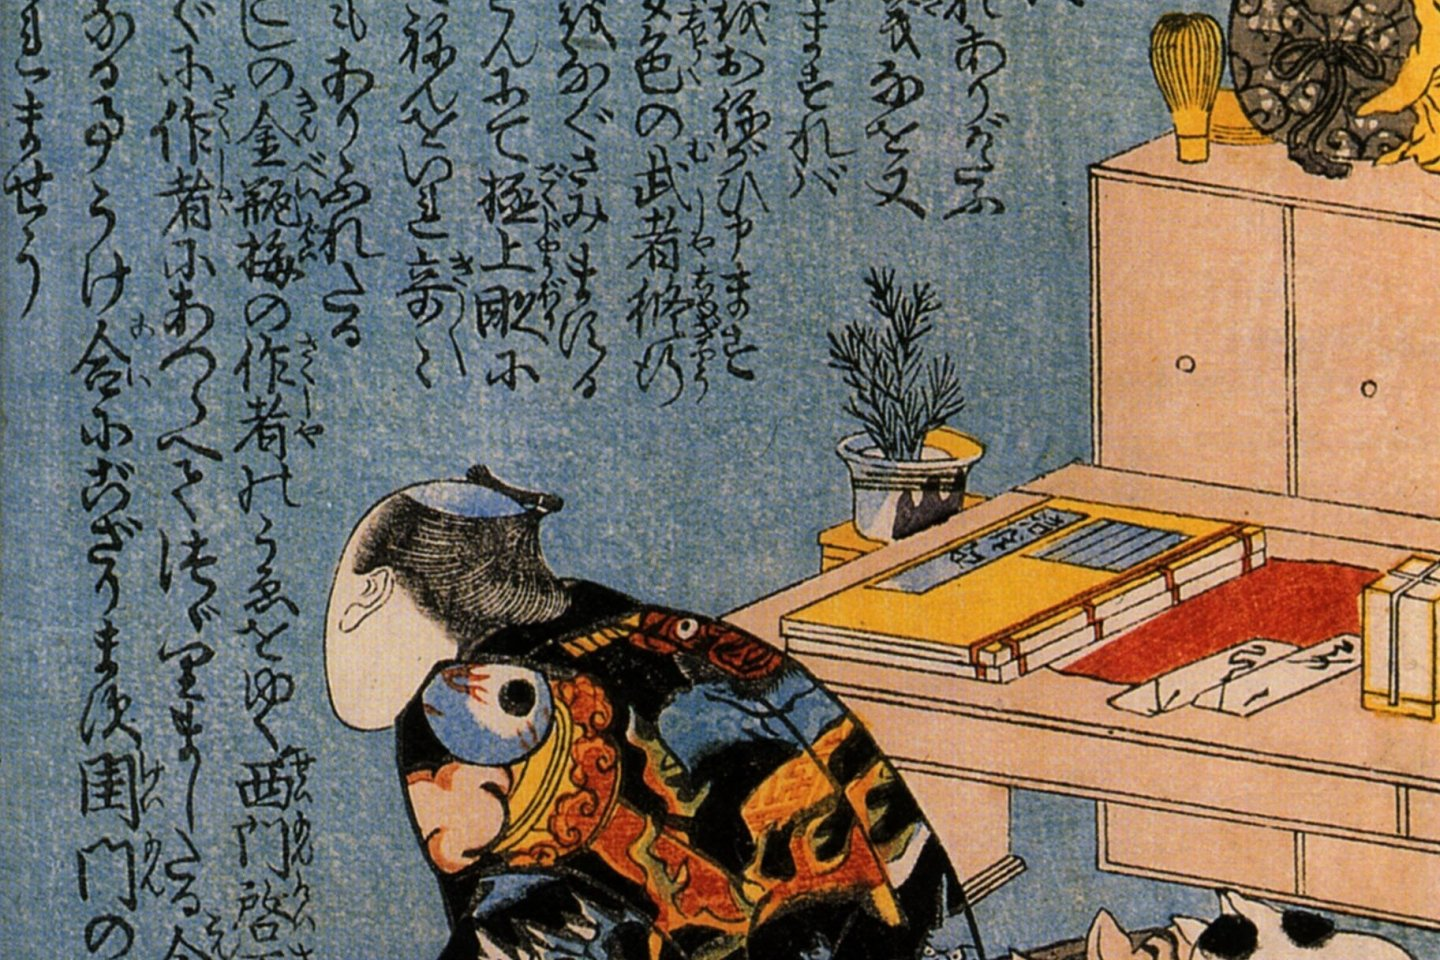 Self-portrait of Utagawa Kuniyoshi